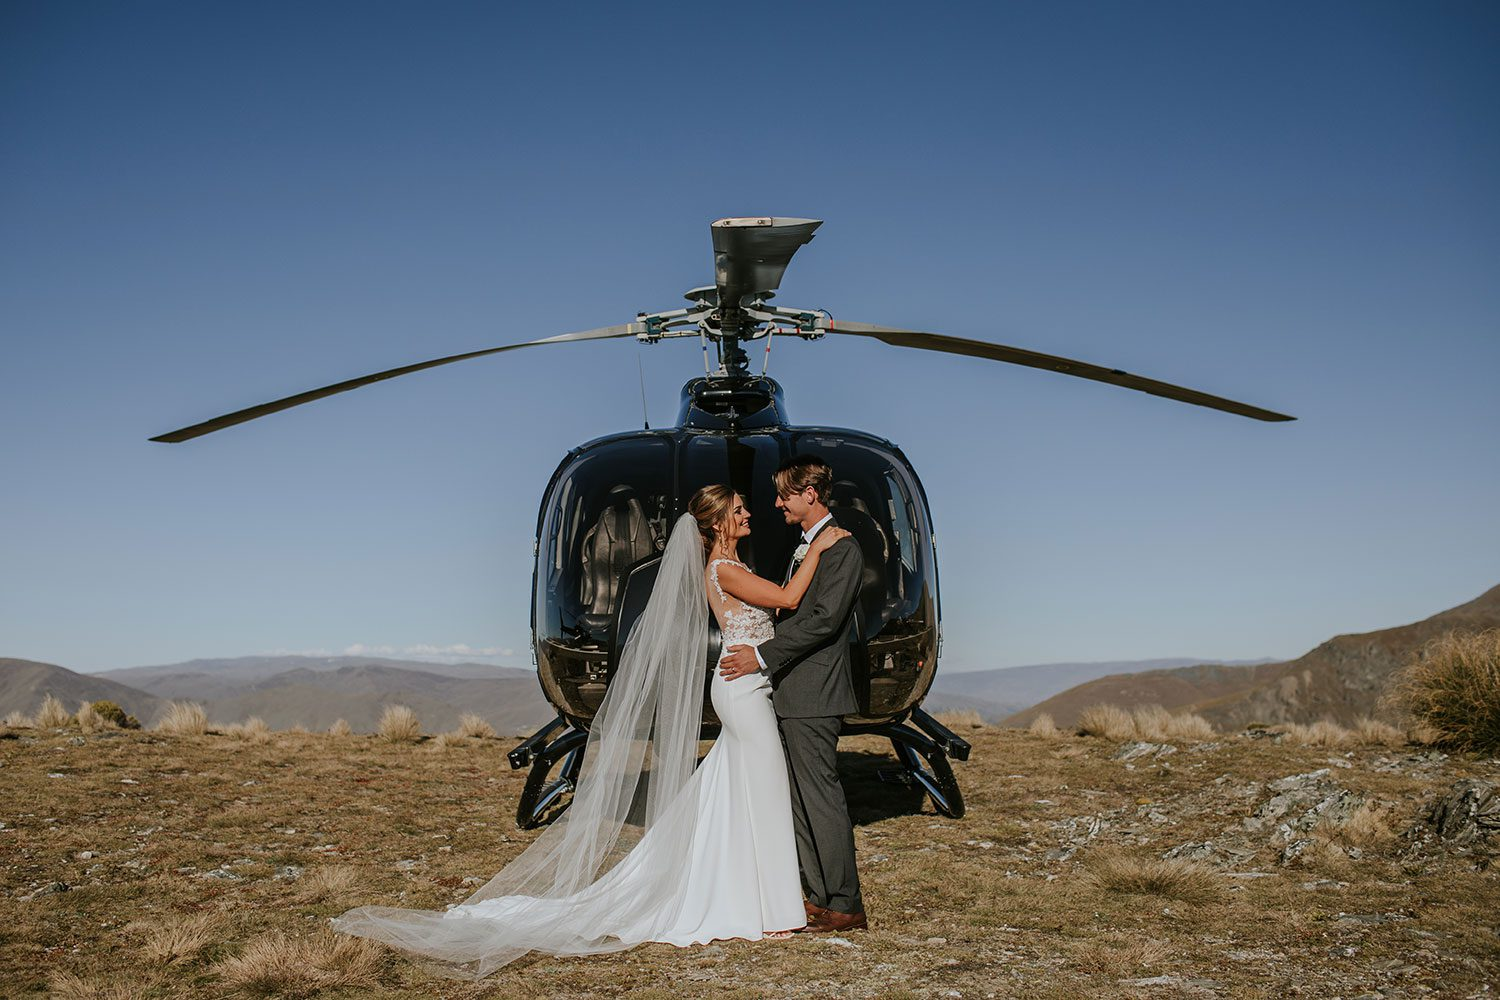 Bride wearing bespoke bridal gown with richly beaded lace over sheer tulle bodice and low back from Auckland wedding dress designer Vinka designs - embrace with groom in front of helicopter